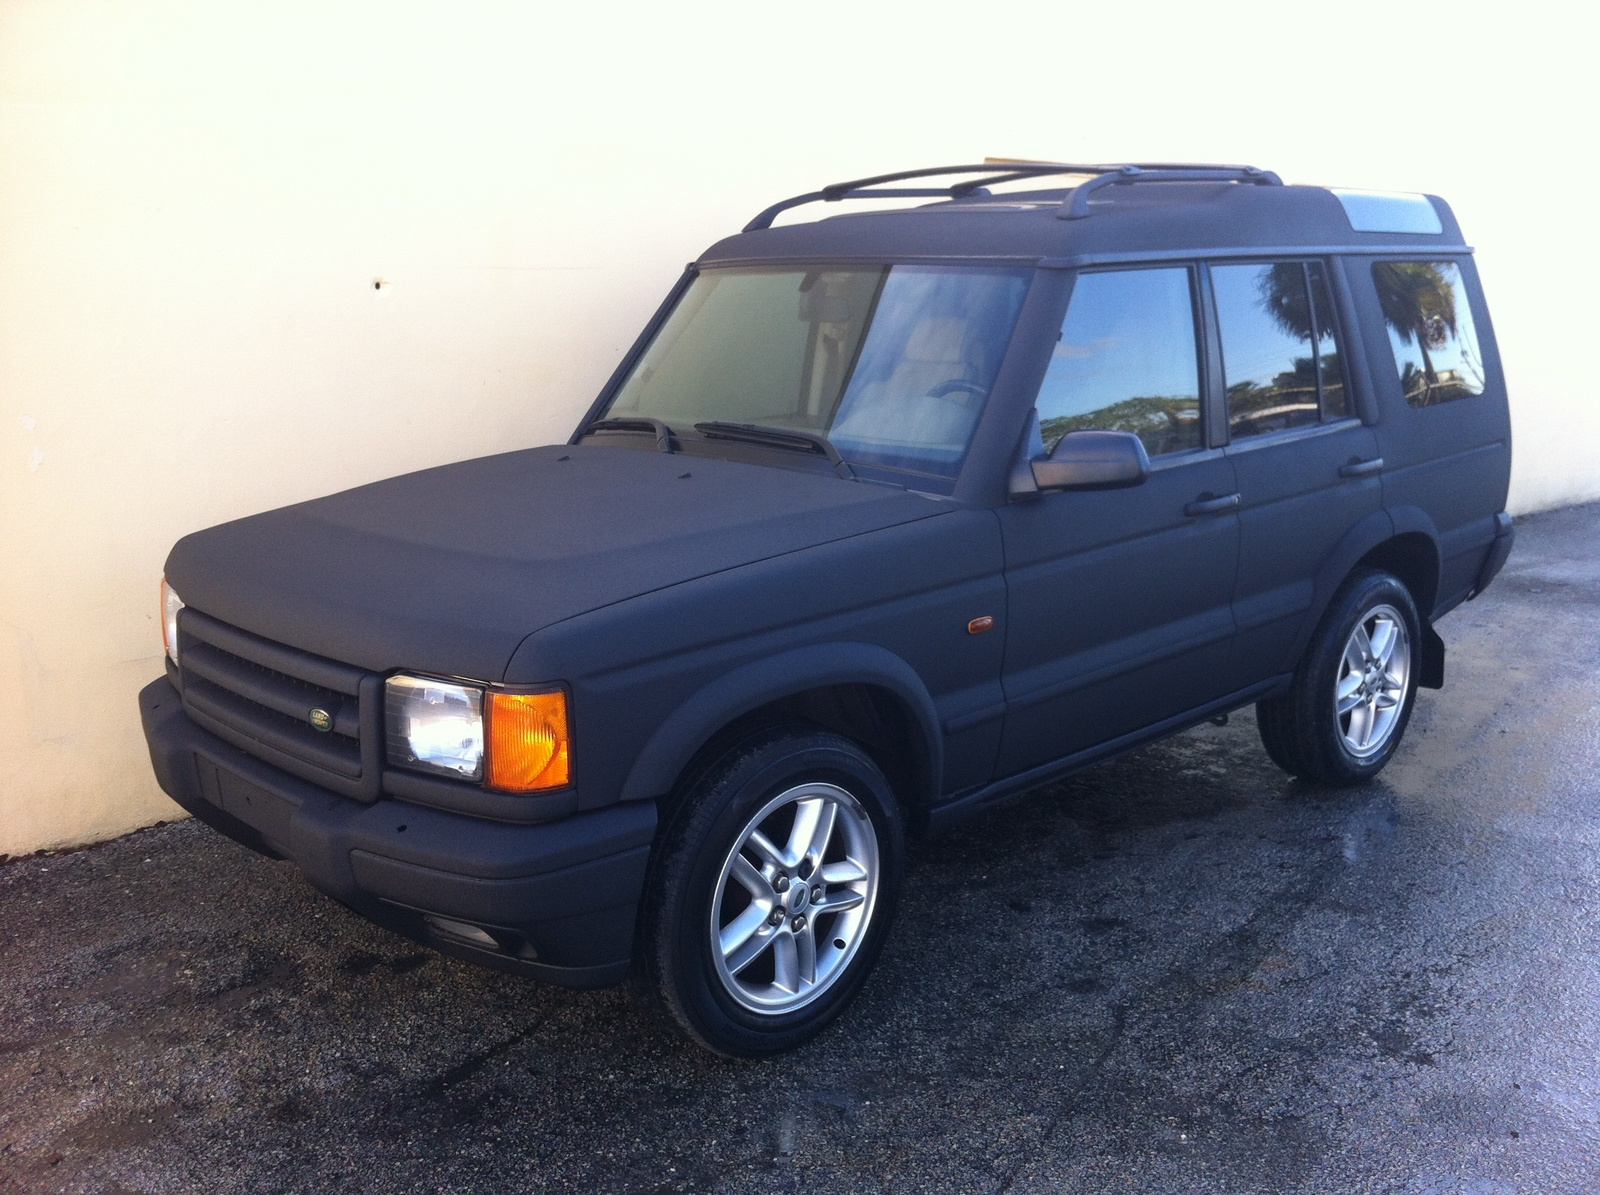 2001 land rover discovery series ii pictures cargurus. Black Bedroom Furniture Sets. Home Design Ideas